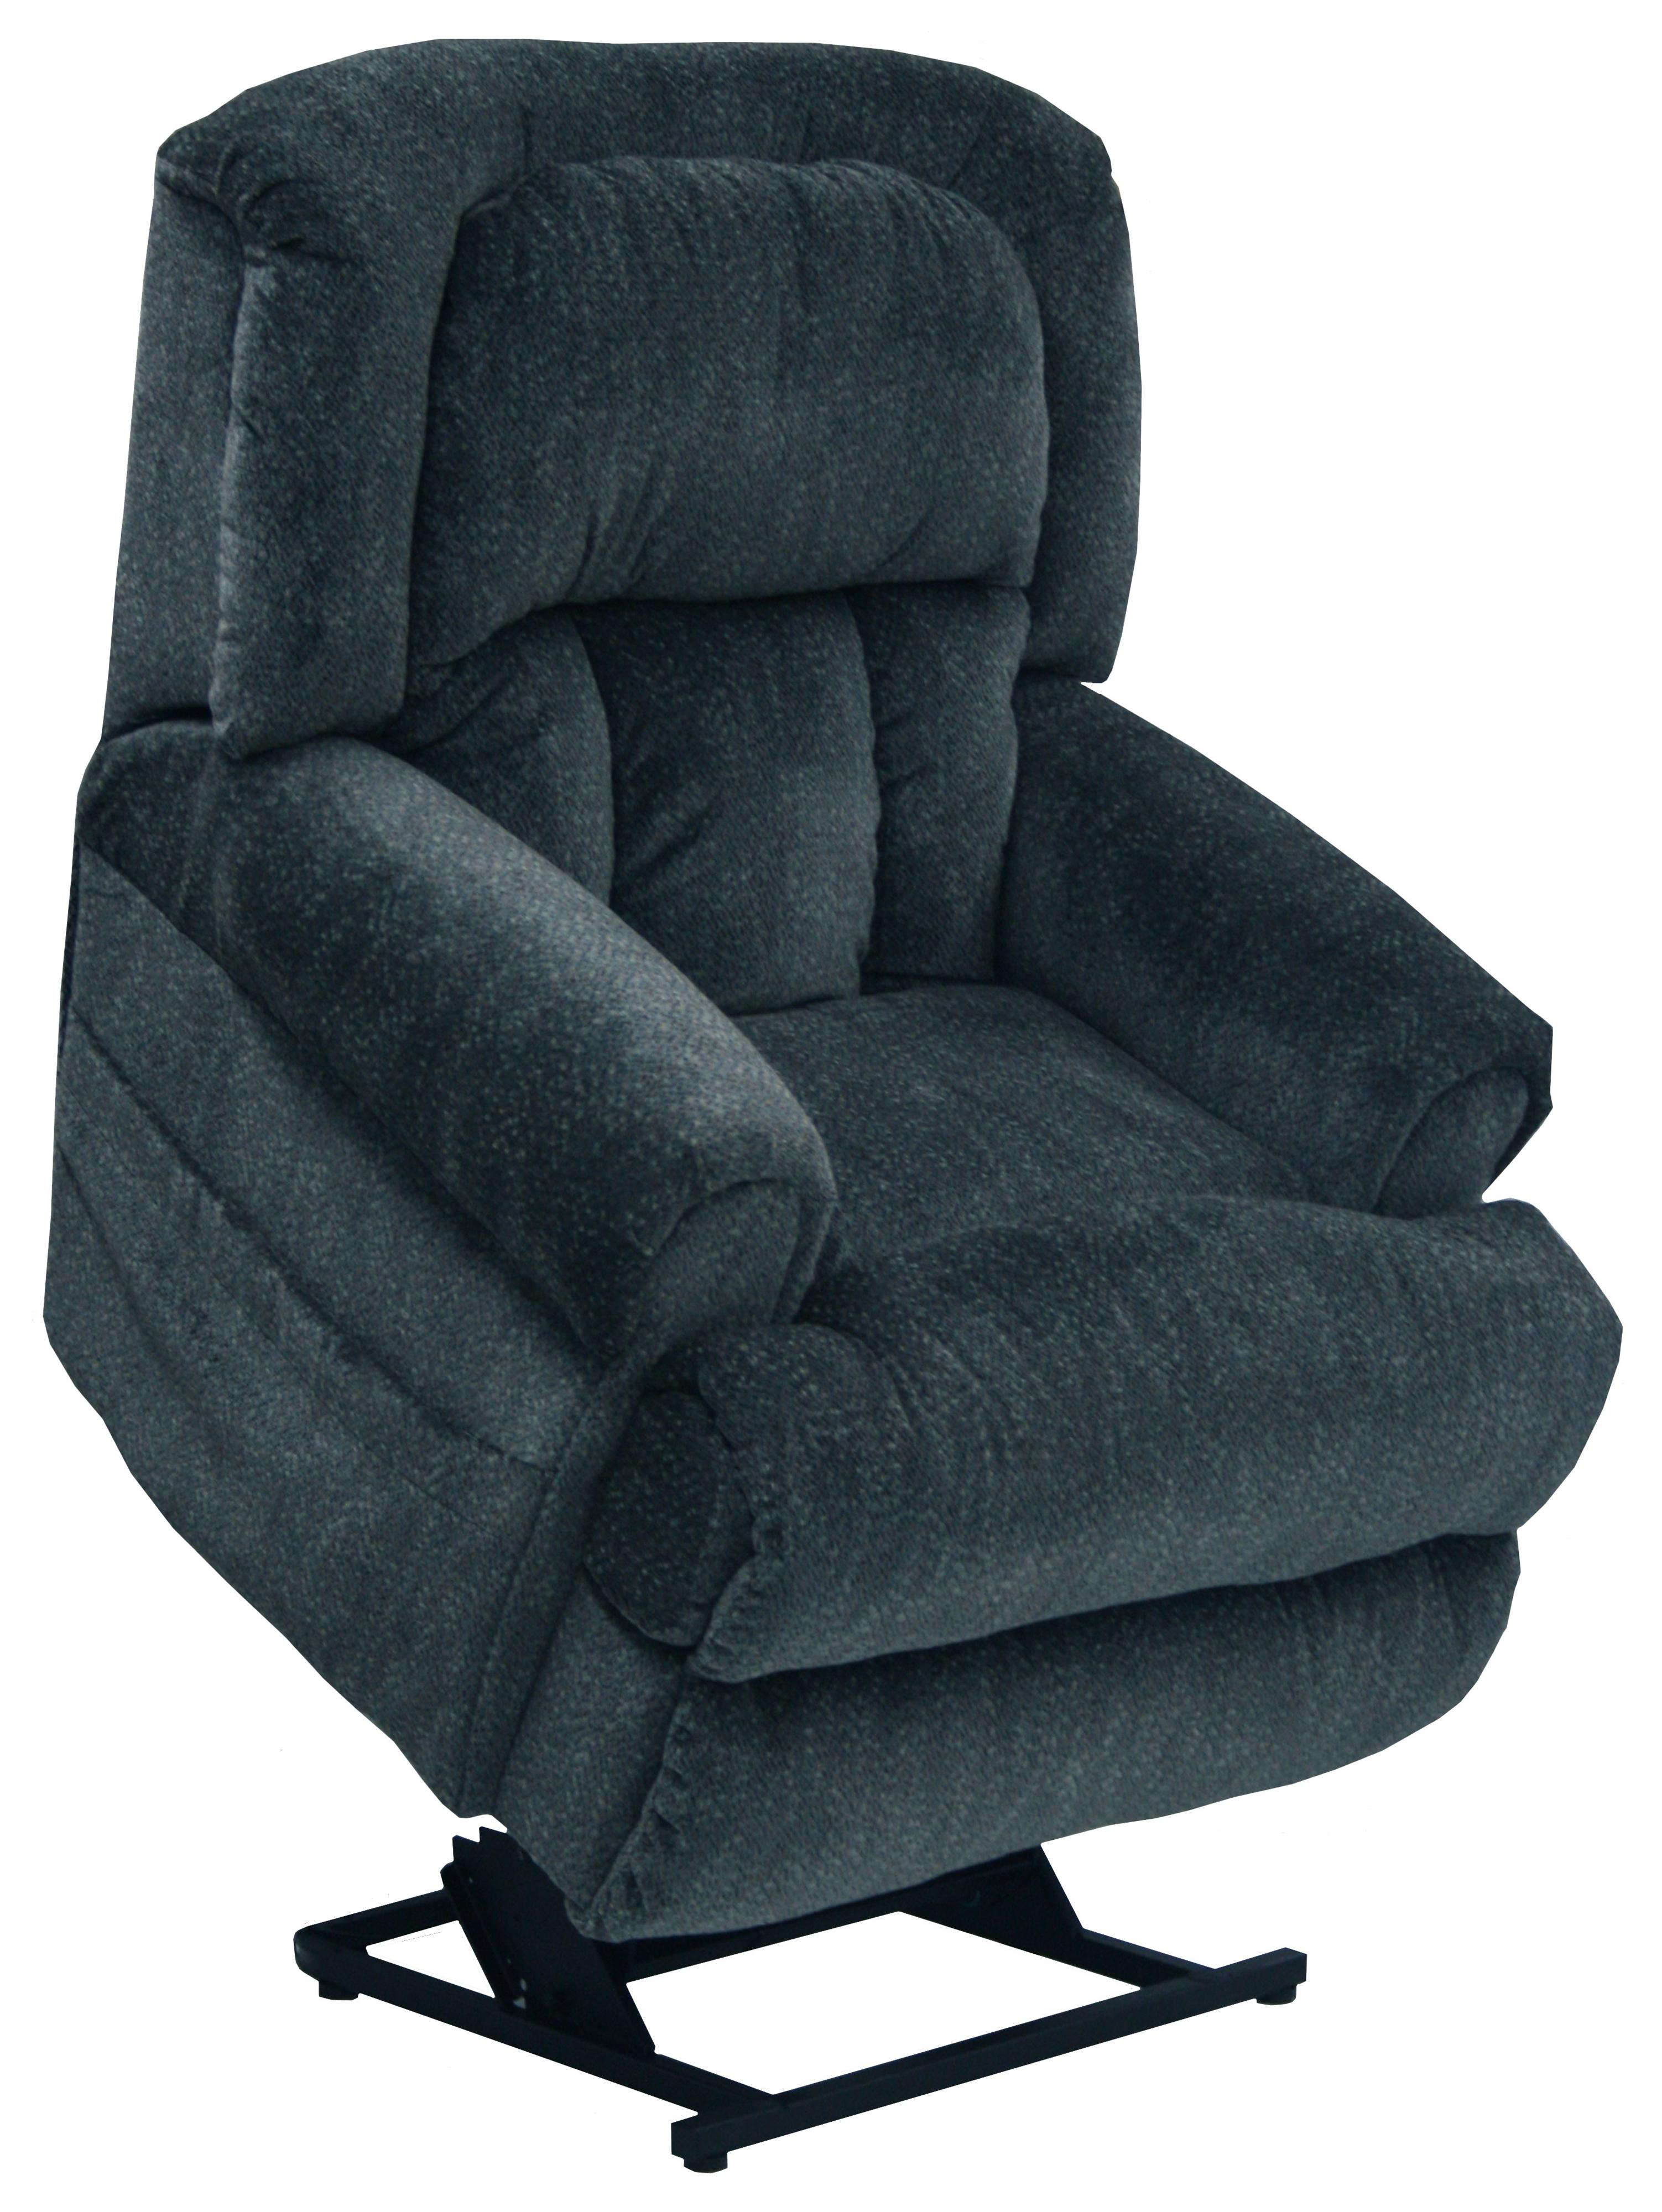 Catnapper Motion Chairs And Recliners Burns Lift Recliner   Item Number:  4847 1763 23